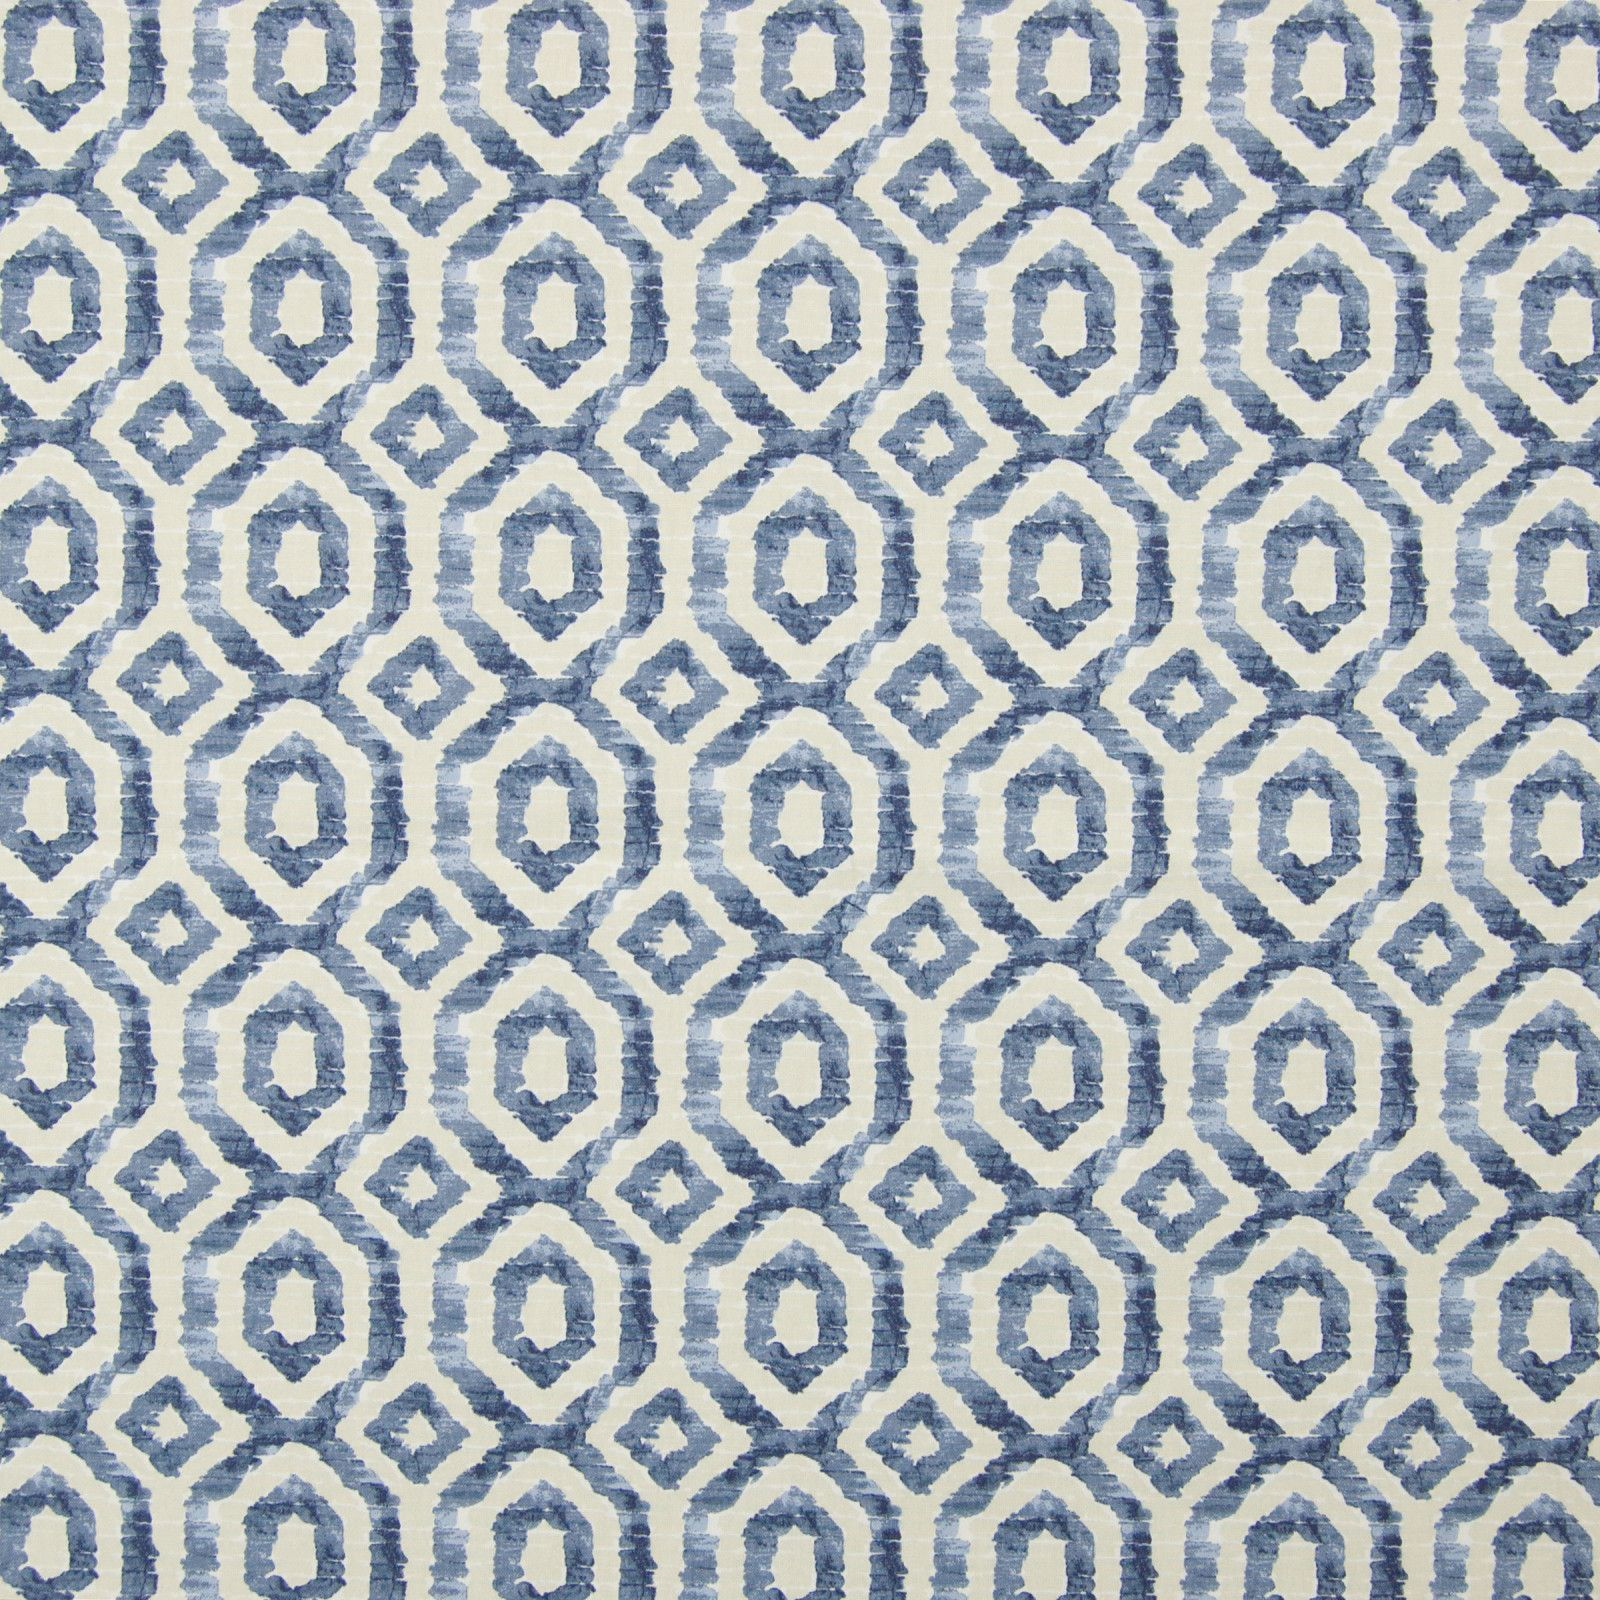 A SUPERB QUALITY UPHOLSTERY FABRIC IN A STUNNING RETRO CHEVRON KILIM DESIGN.